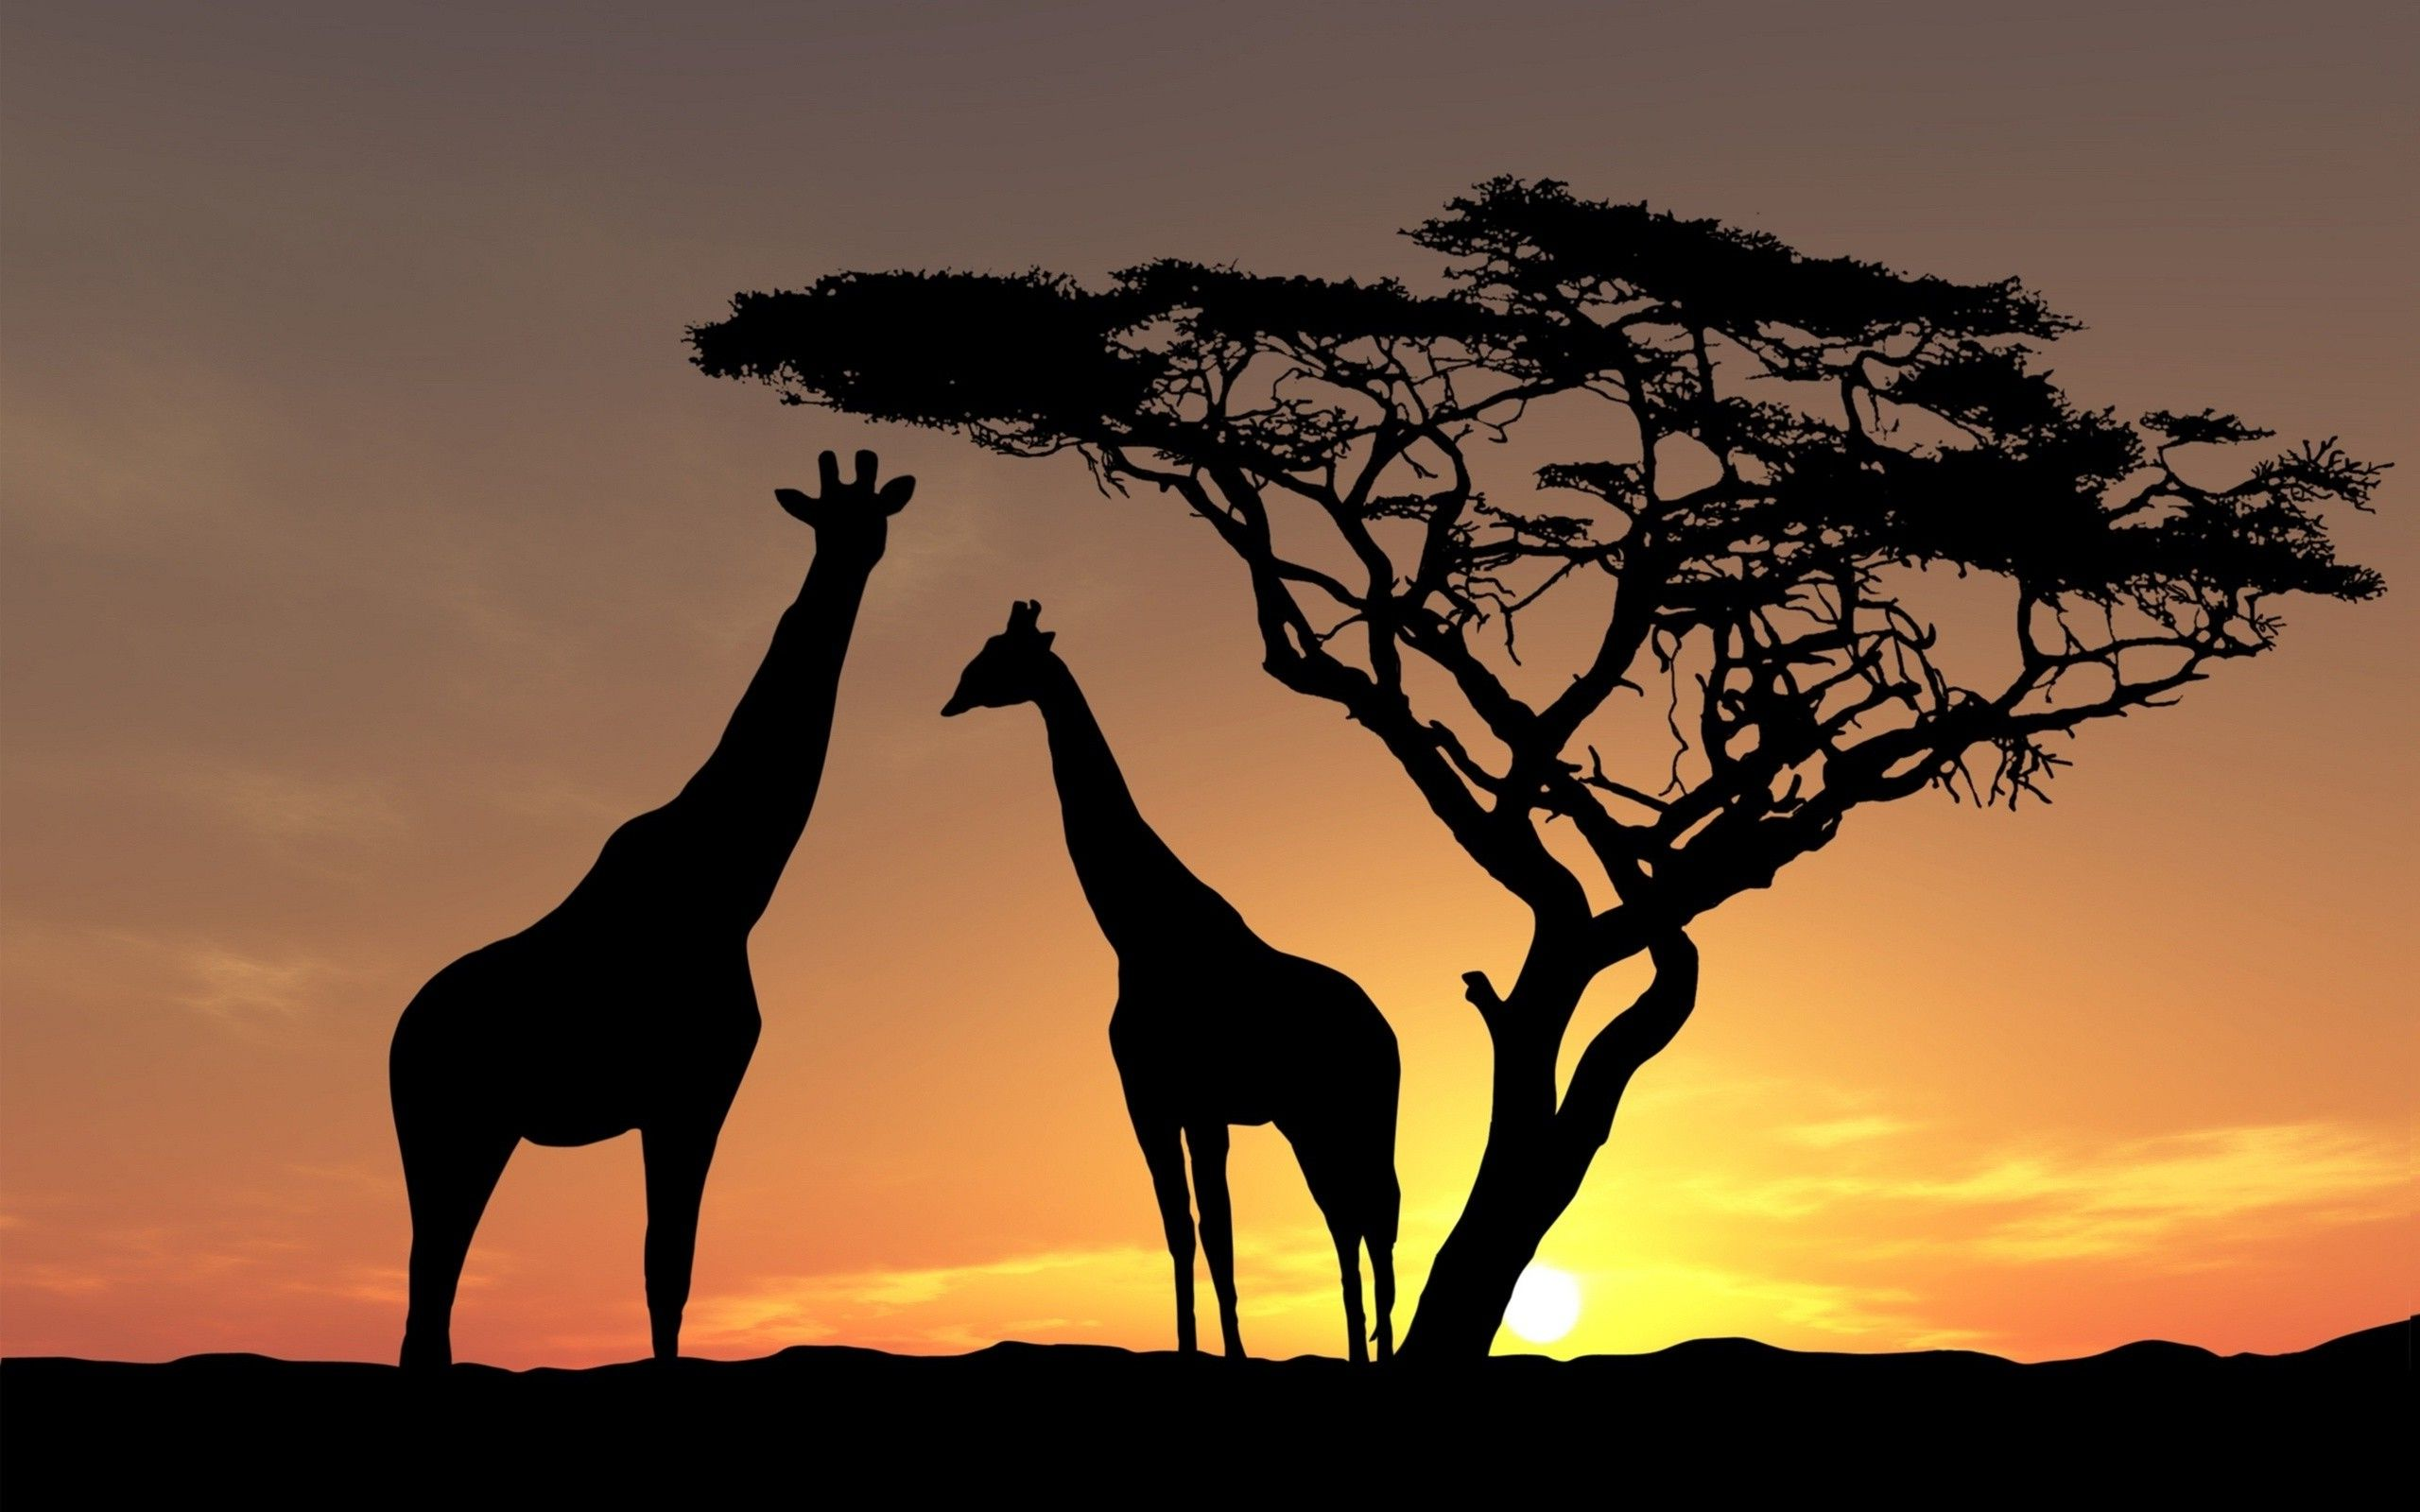 nature Landscape Animals Trees Sunset Silhouette Africa